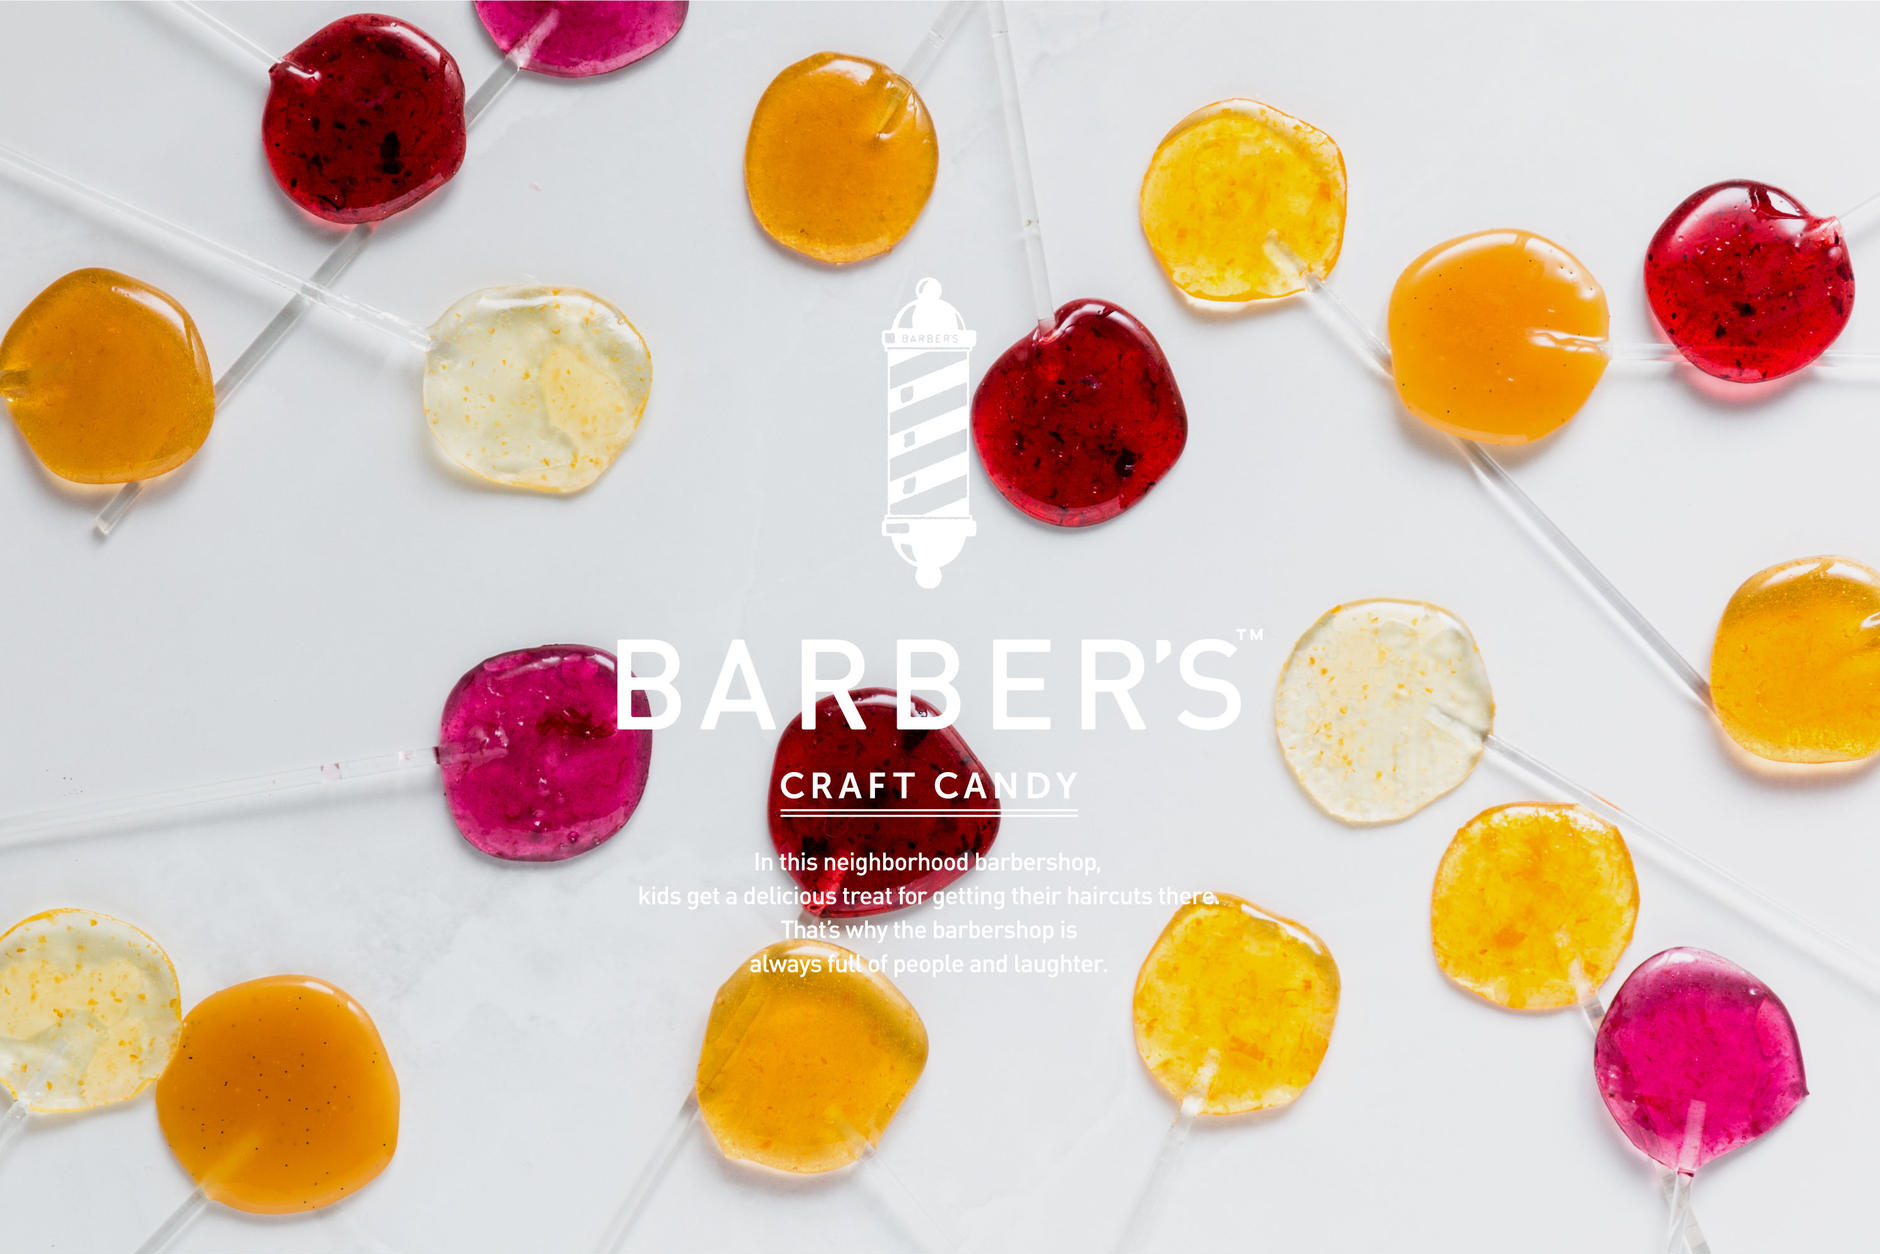 BARBER'S CRAFT CANDY STORE